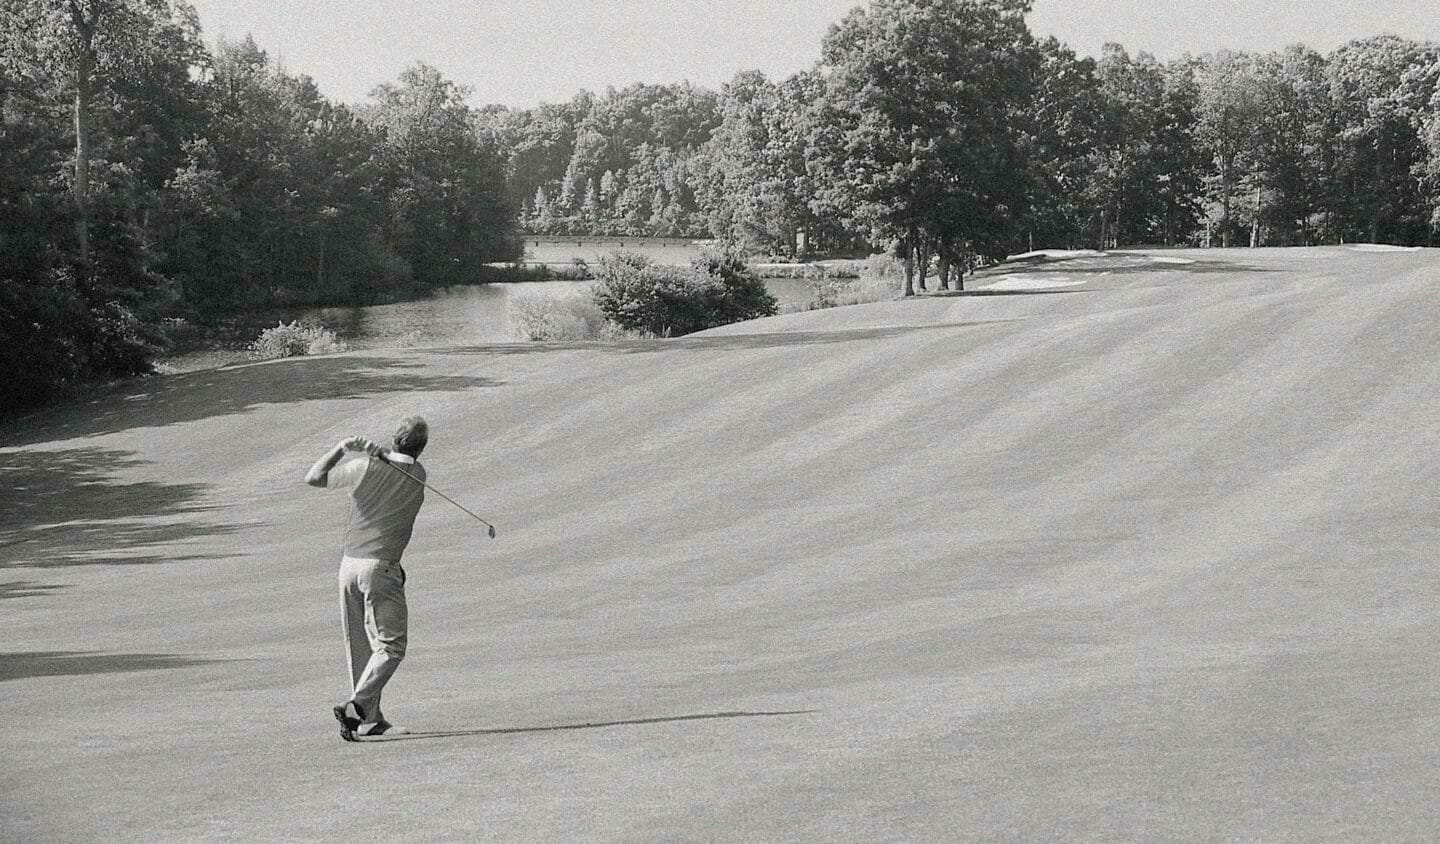 grayscale photo of man playing golf